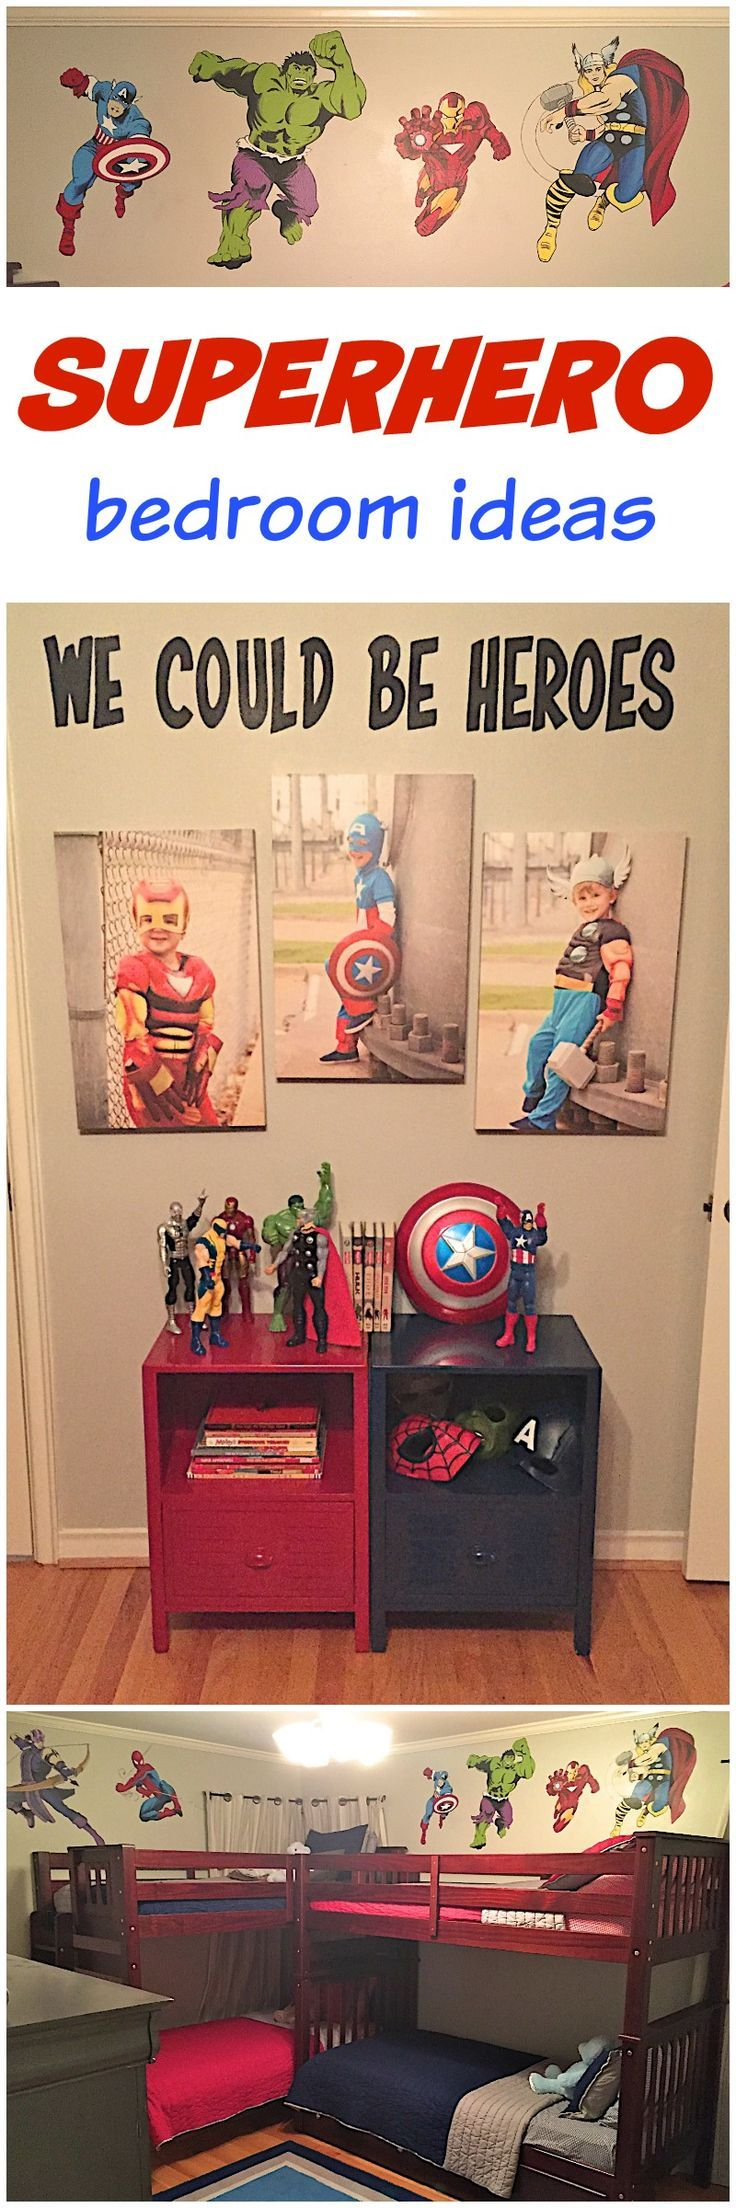 Top 25+ best Boys superhero bedroom ideas on Pinterest | Superhero ...